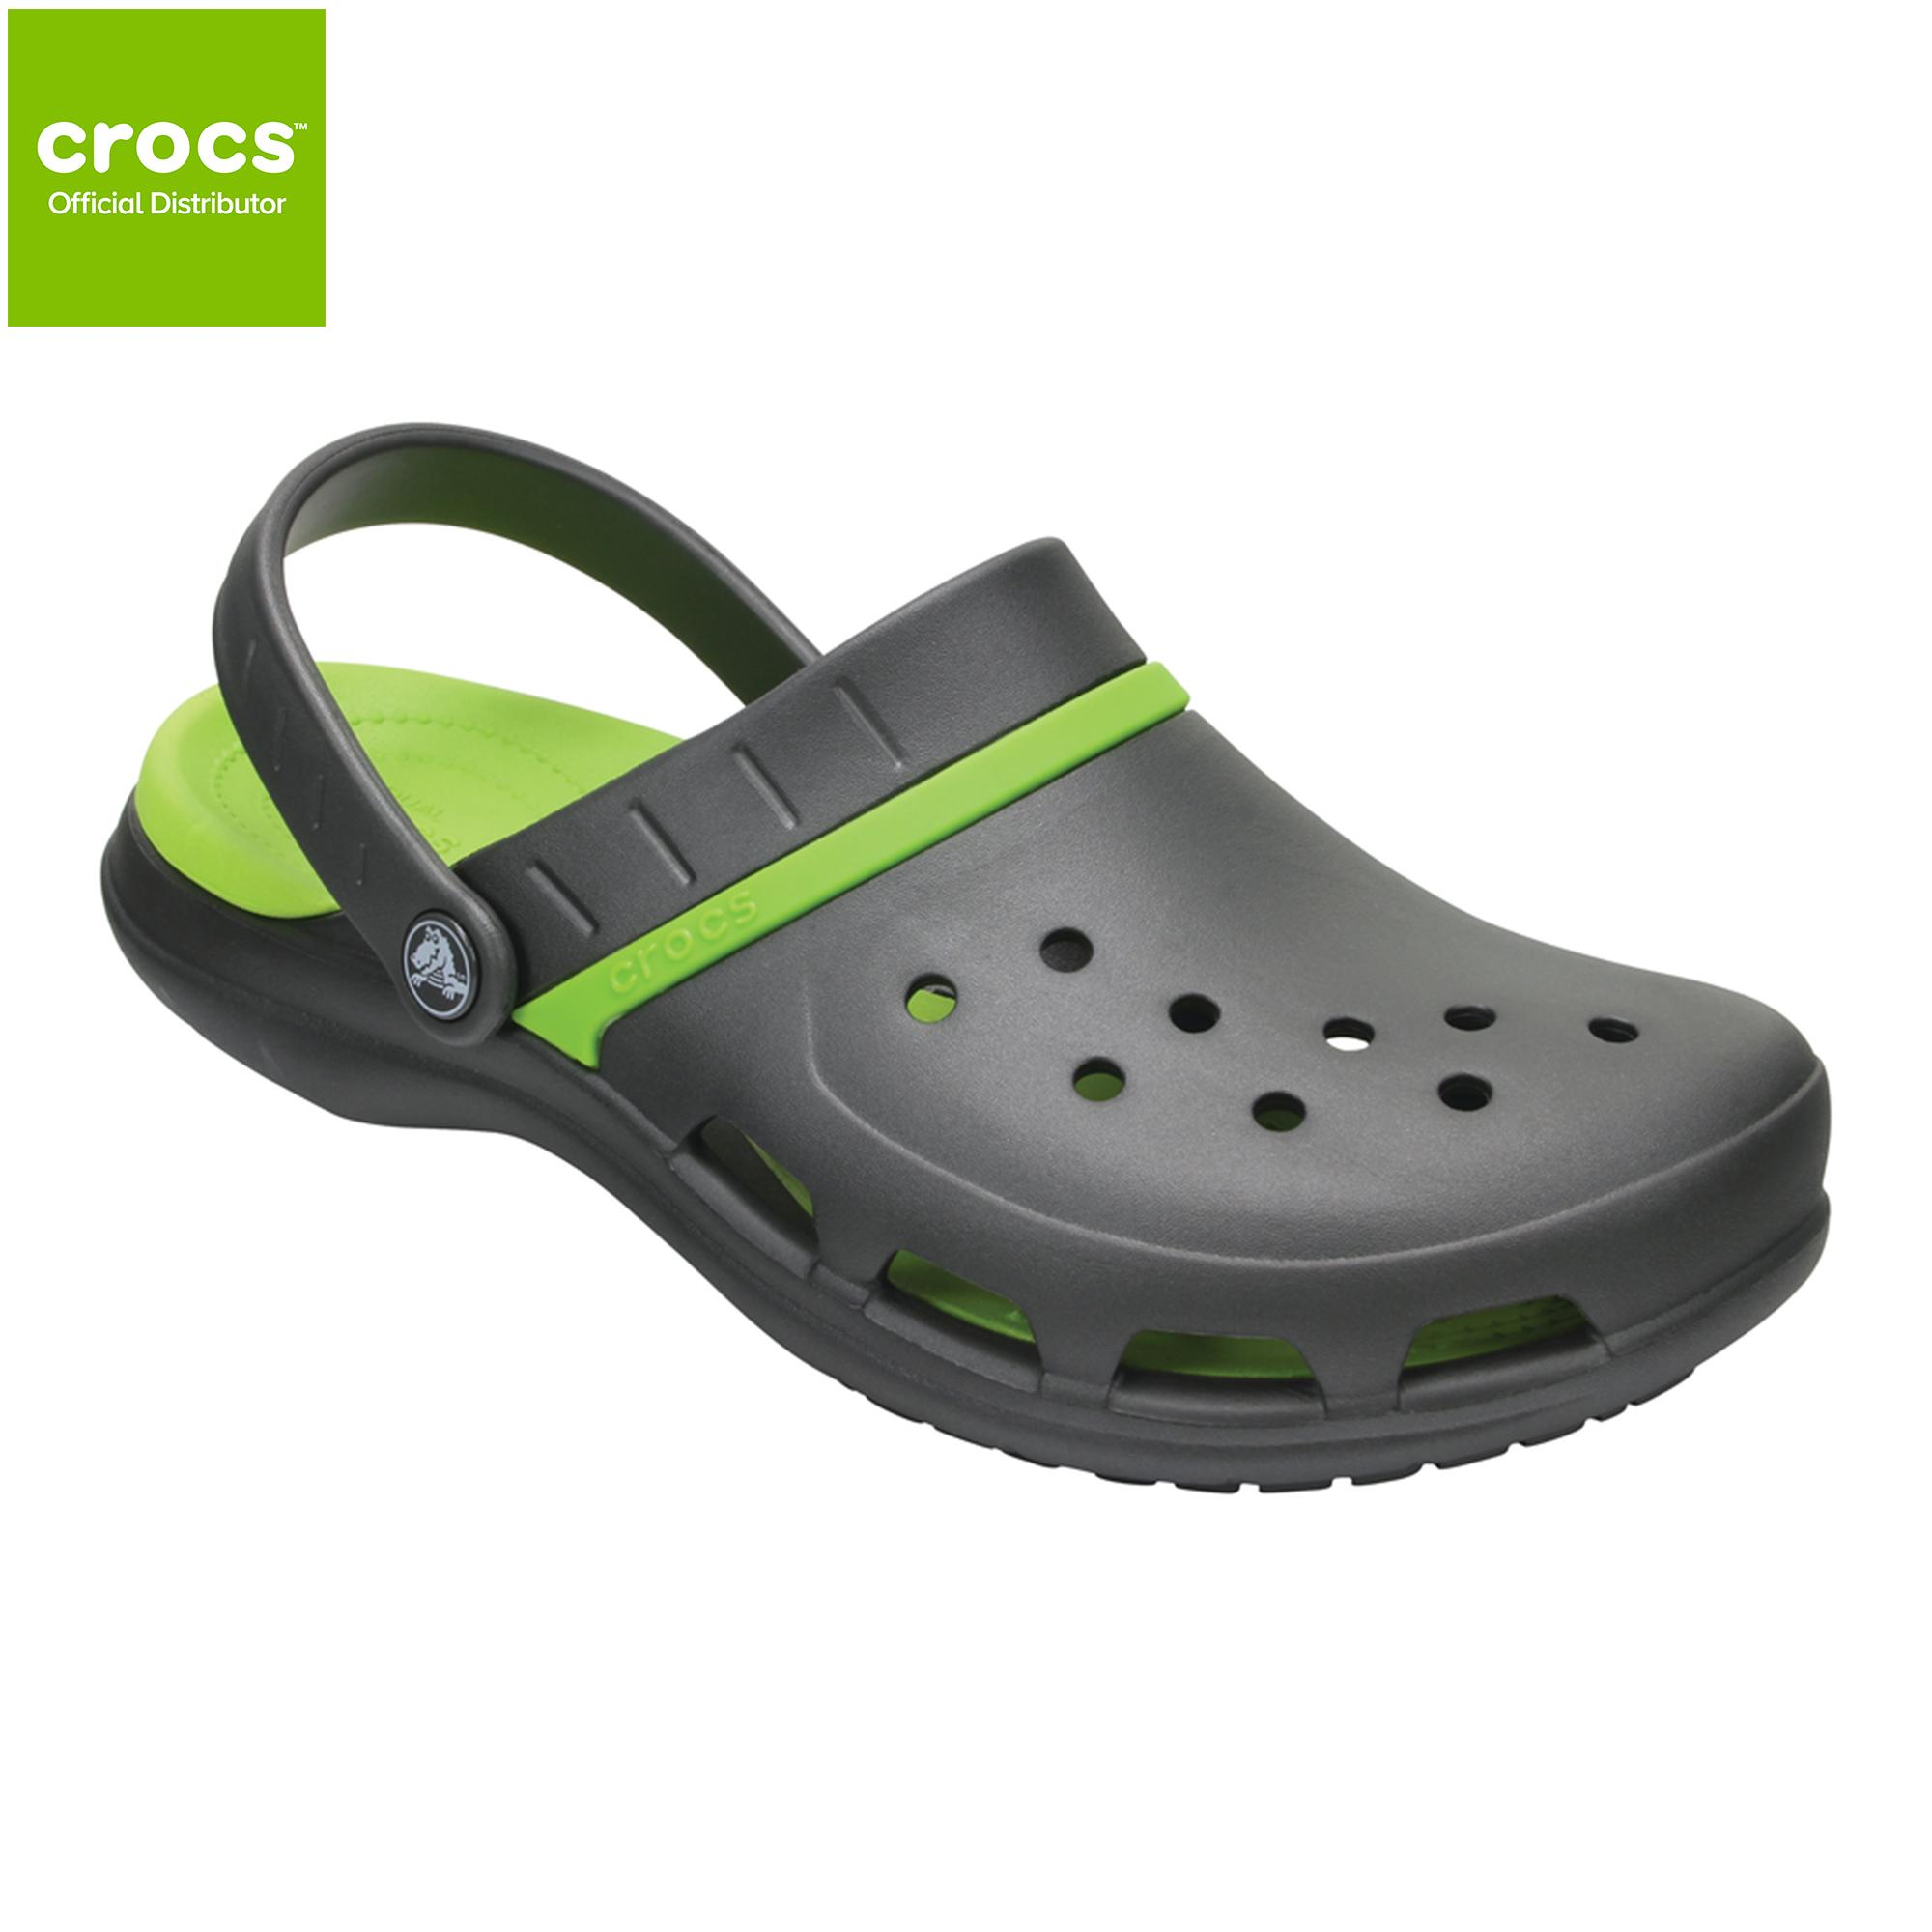 3b09d252379 Crocs Philippines  Crocs price list - Crocs Flats